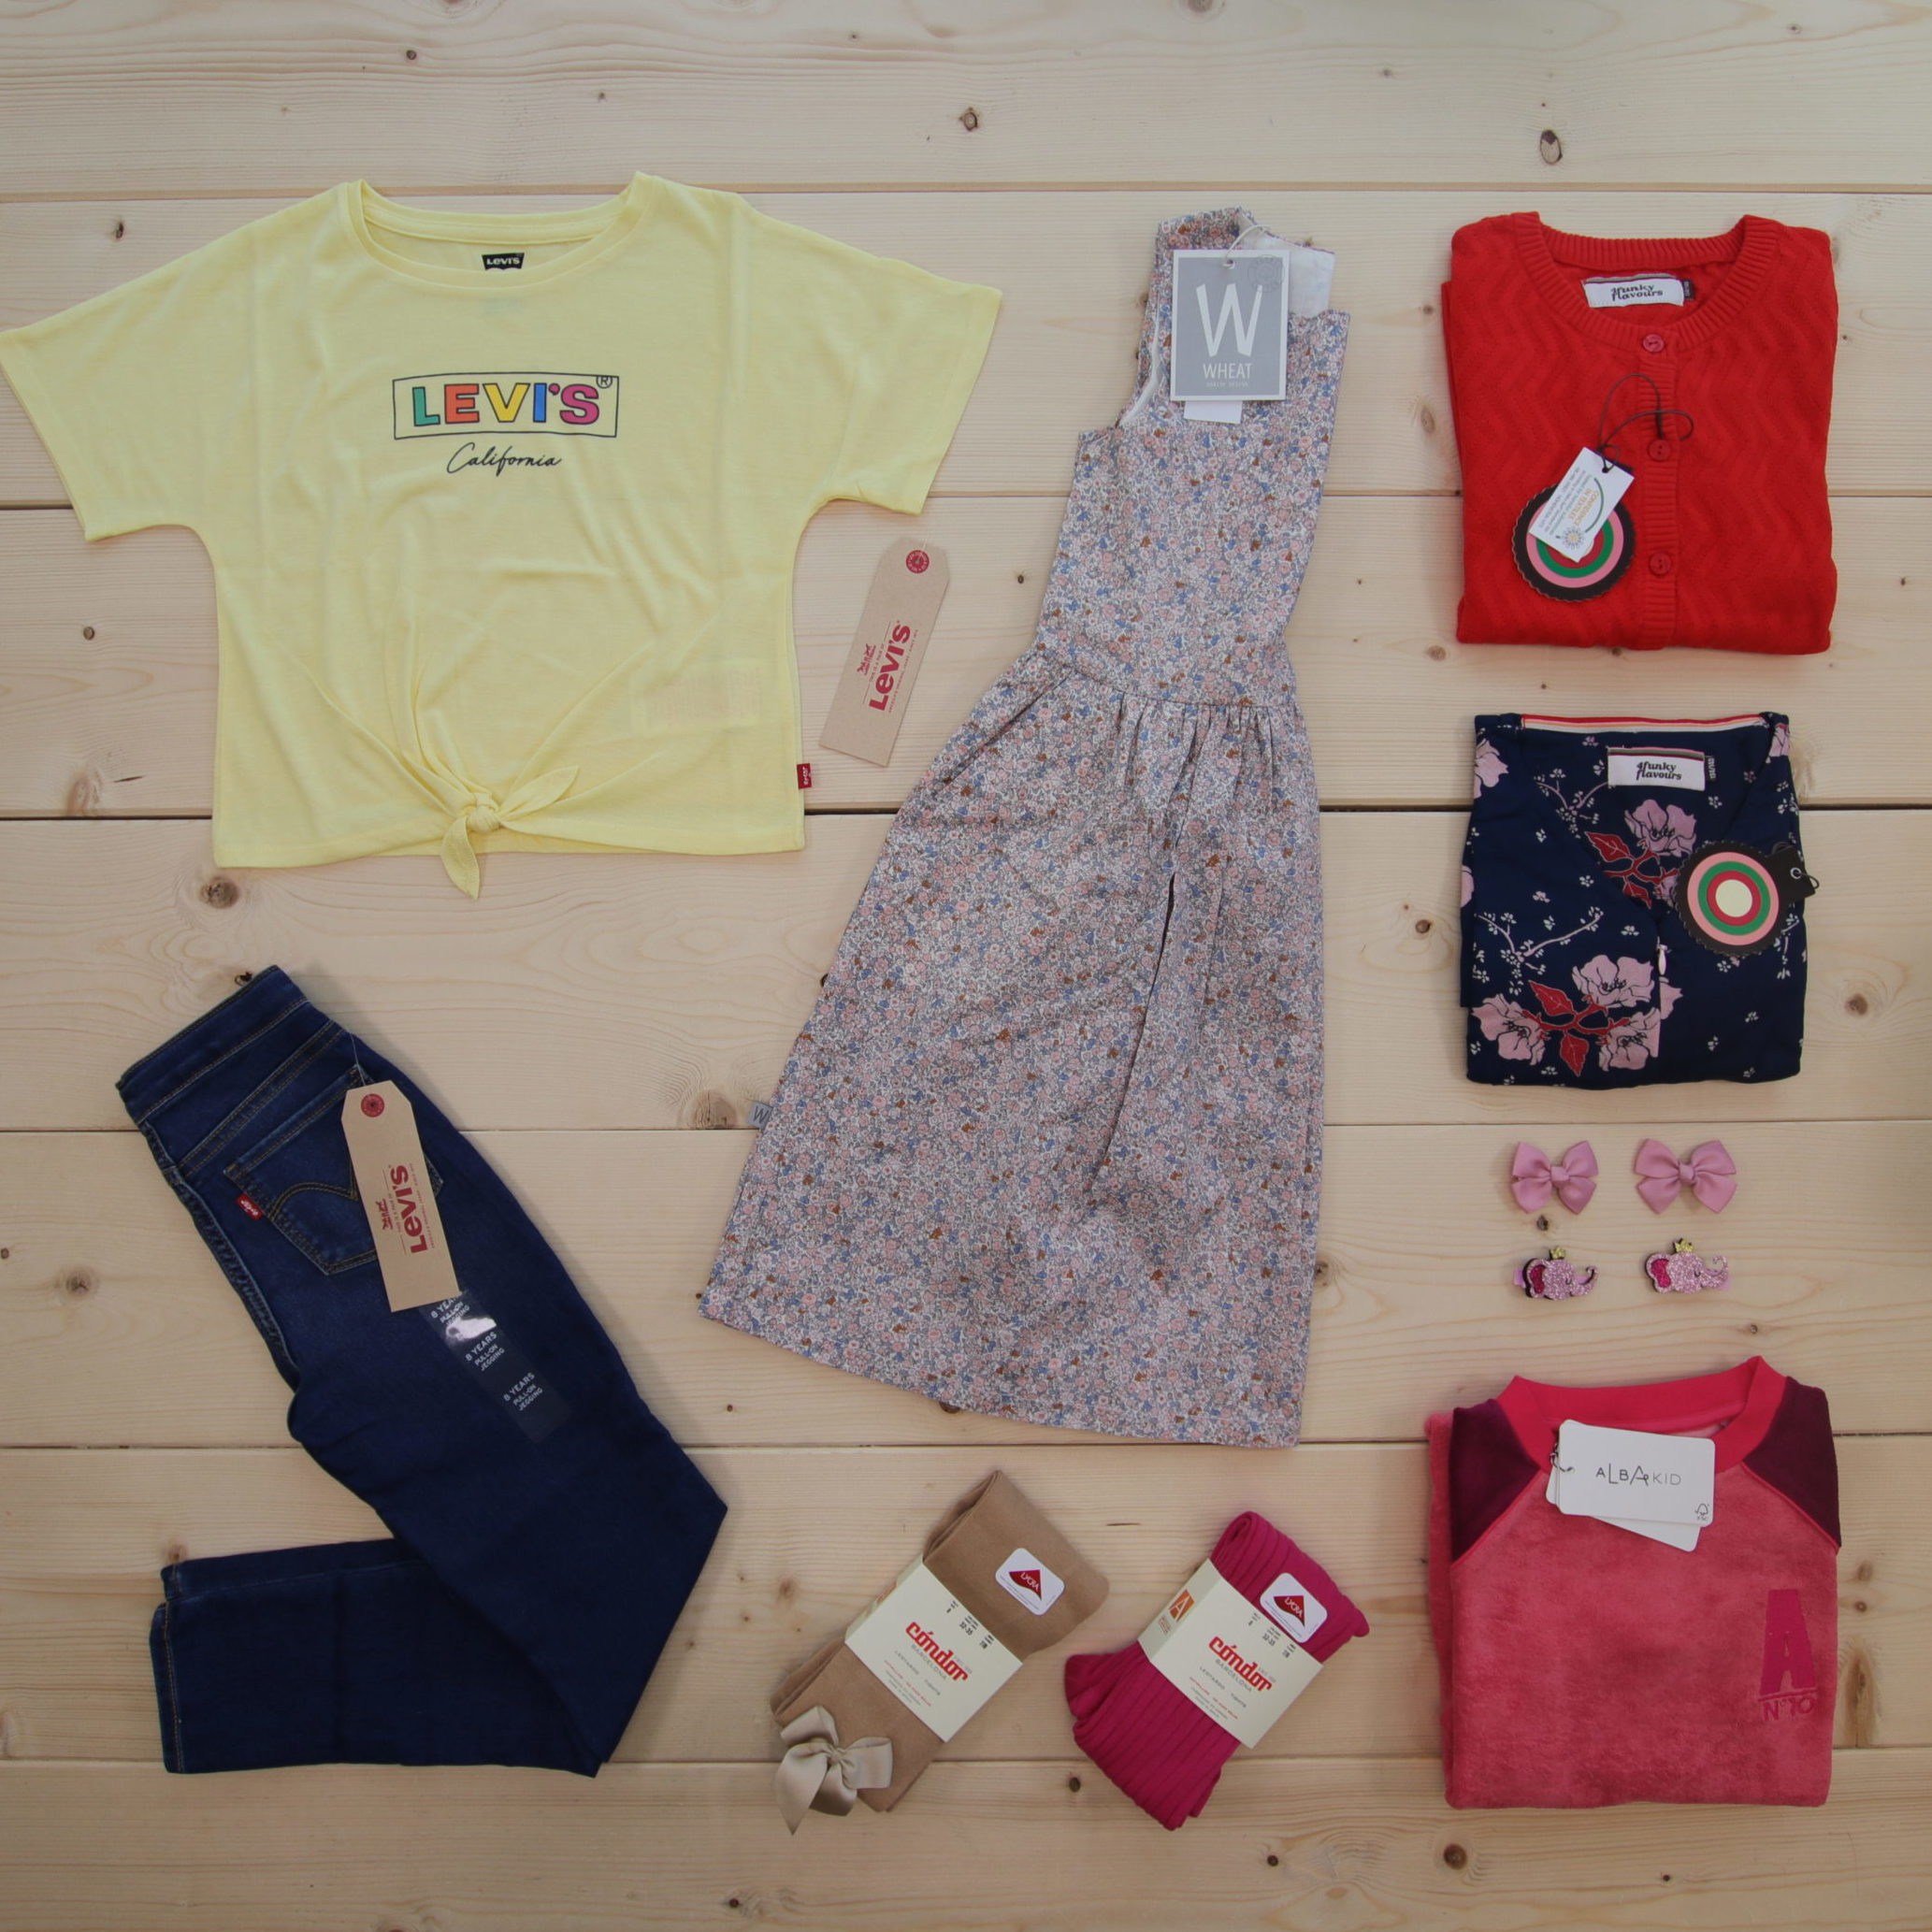 NEWS from Levi's, Wheat, 4 Funky Flavours, Alba, Cóndor, and Den lille prikken over i'en ❤️📦 #news #ss20  This is Småkassen that we prepared for a girl in the styles cute, cool, and colorful in size 134.